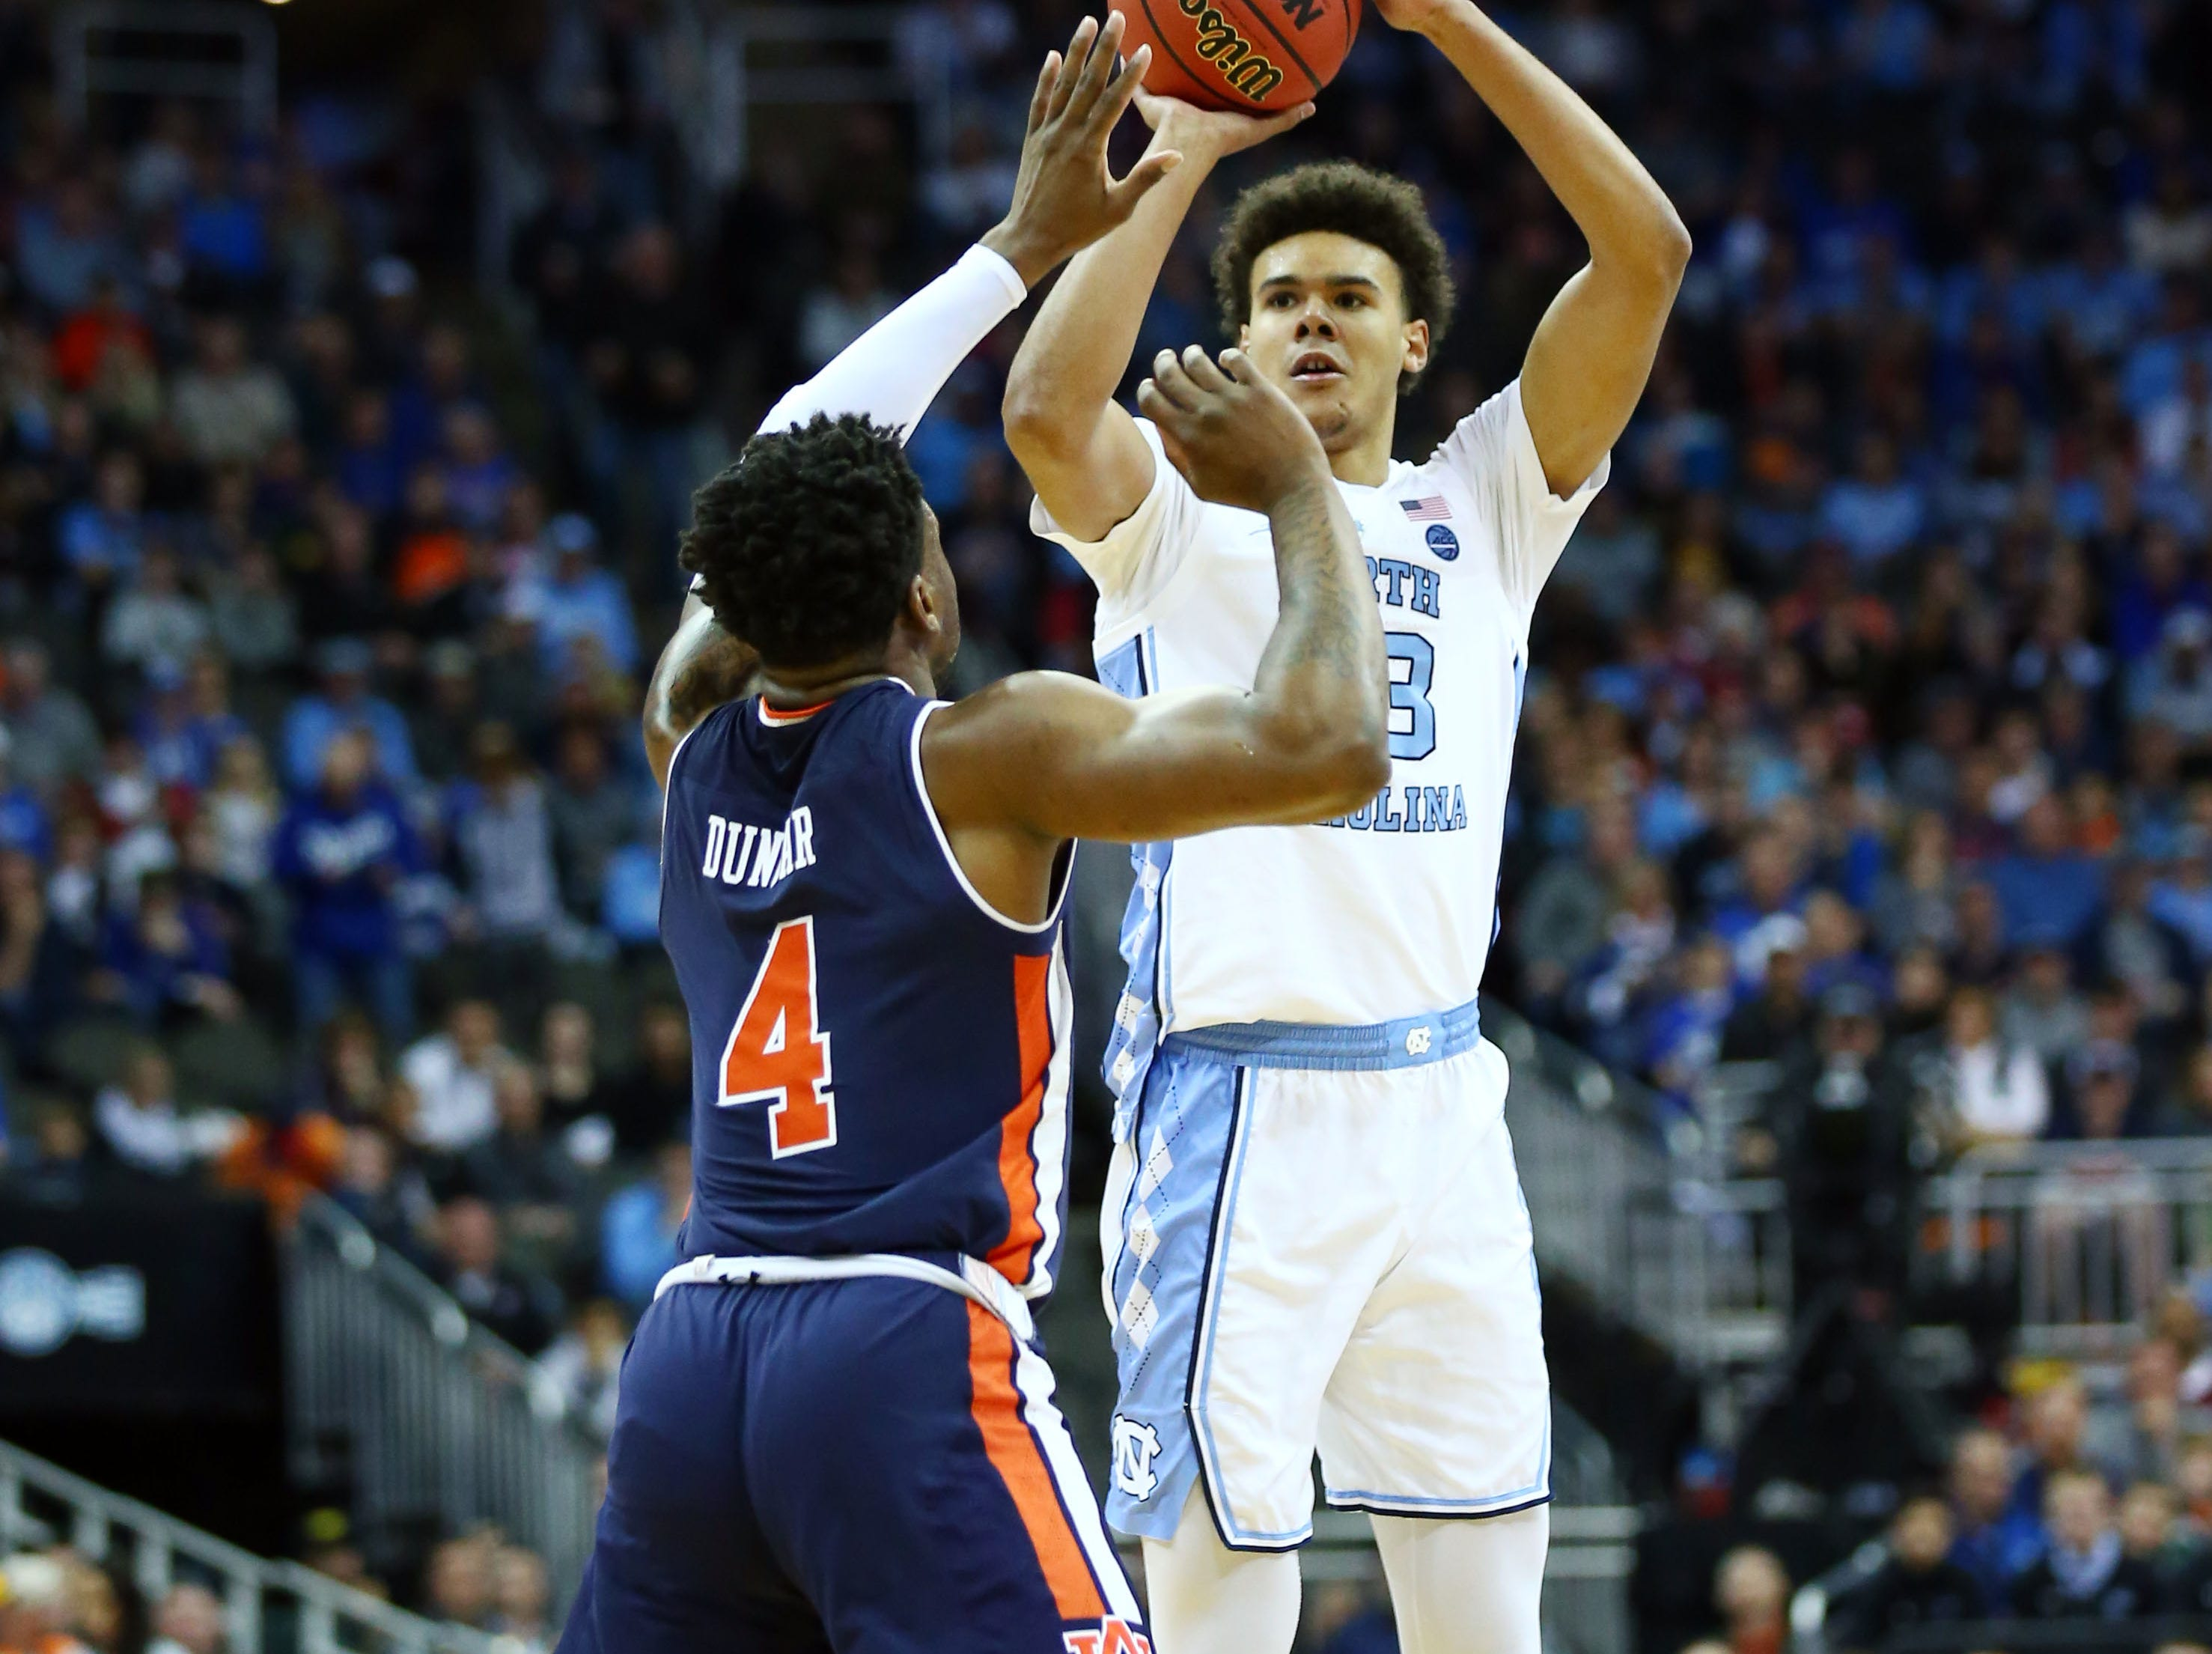 Mar 29, 2019; Kansas City, MO, United States; North Carolina Tar Heels guard Cameron Johnson (13) shoots against Auburn Tigers guard Malik Dunbar (4) during the first half in the semifinals of the midwest regional of the 2019 NCAA Tournament at Sprint Center. Mandatory Credit: Jay Biggerstaff-USA TODAY Sports